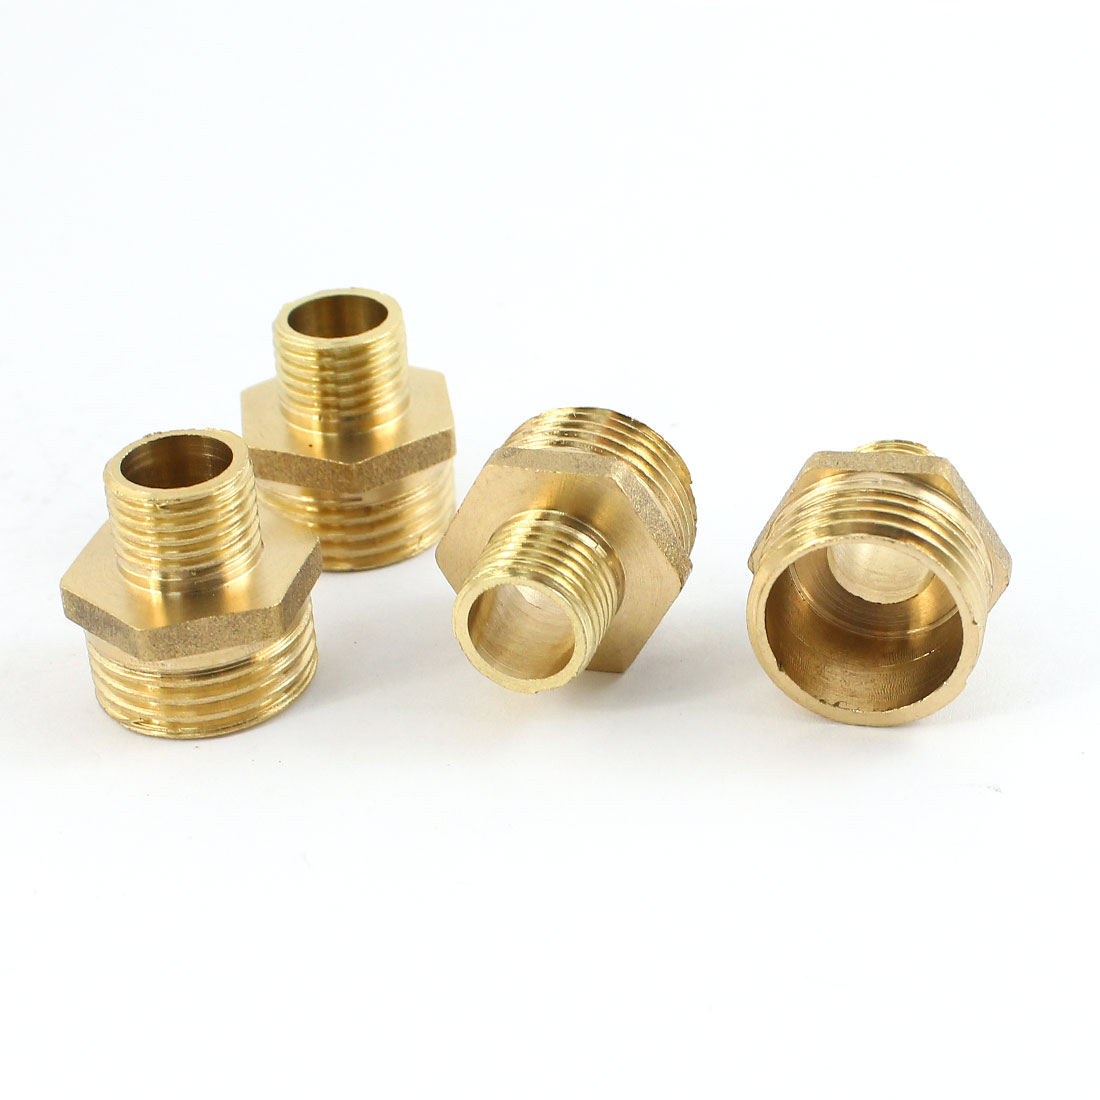 4Pcs 1/4PT to 1/2PT Male Threaded Reducer Pipe Hex Nipple Coupler Straight Connector for Water Heating Fitting